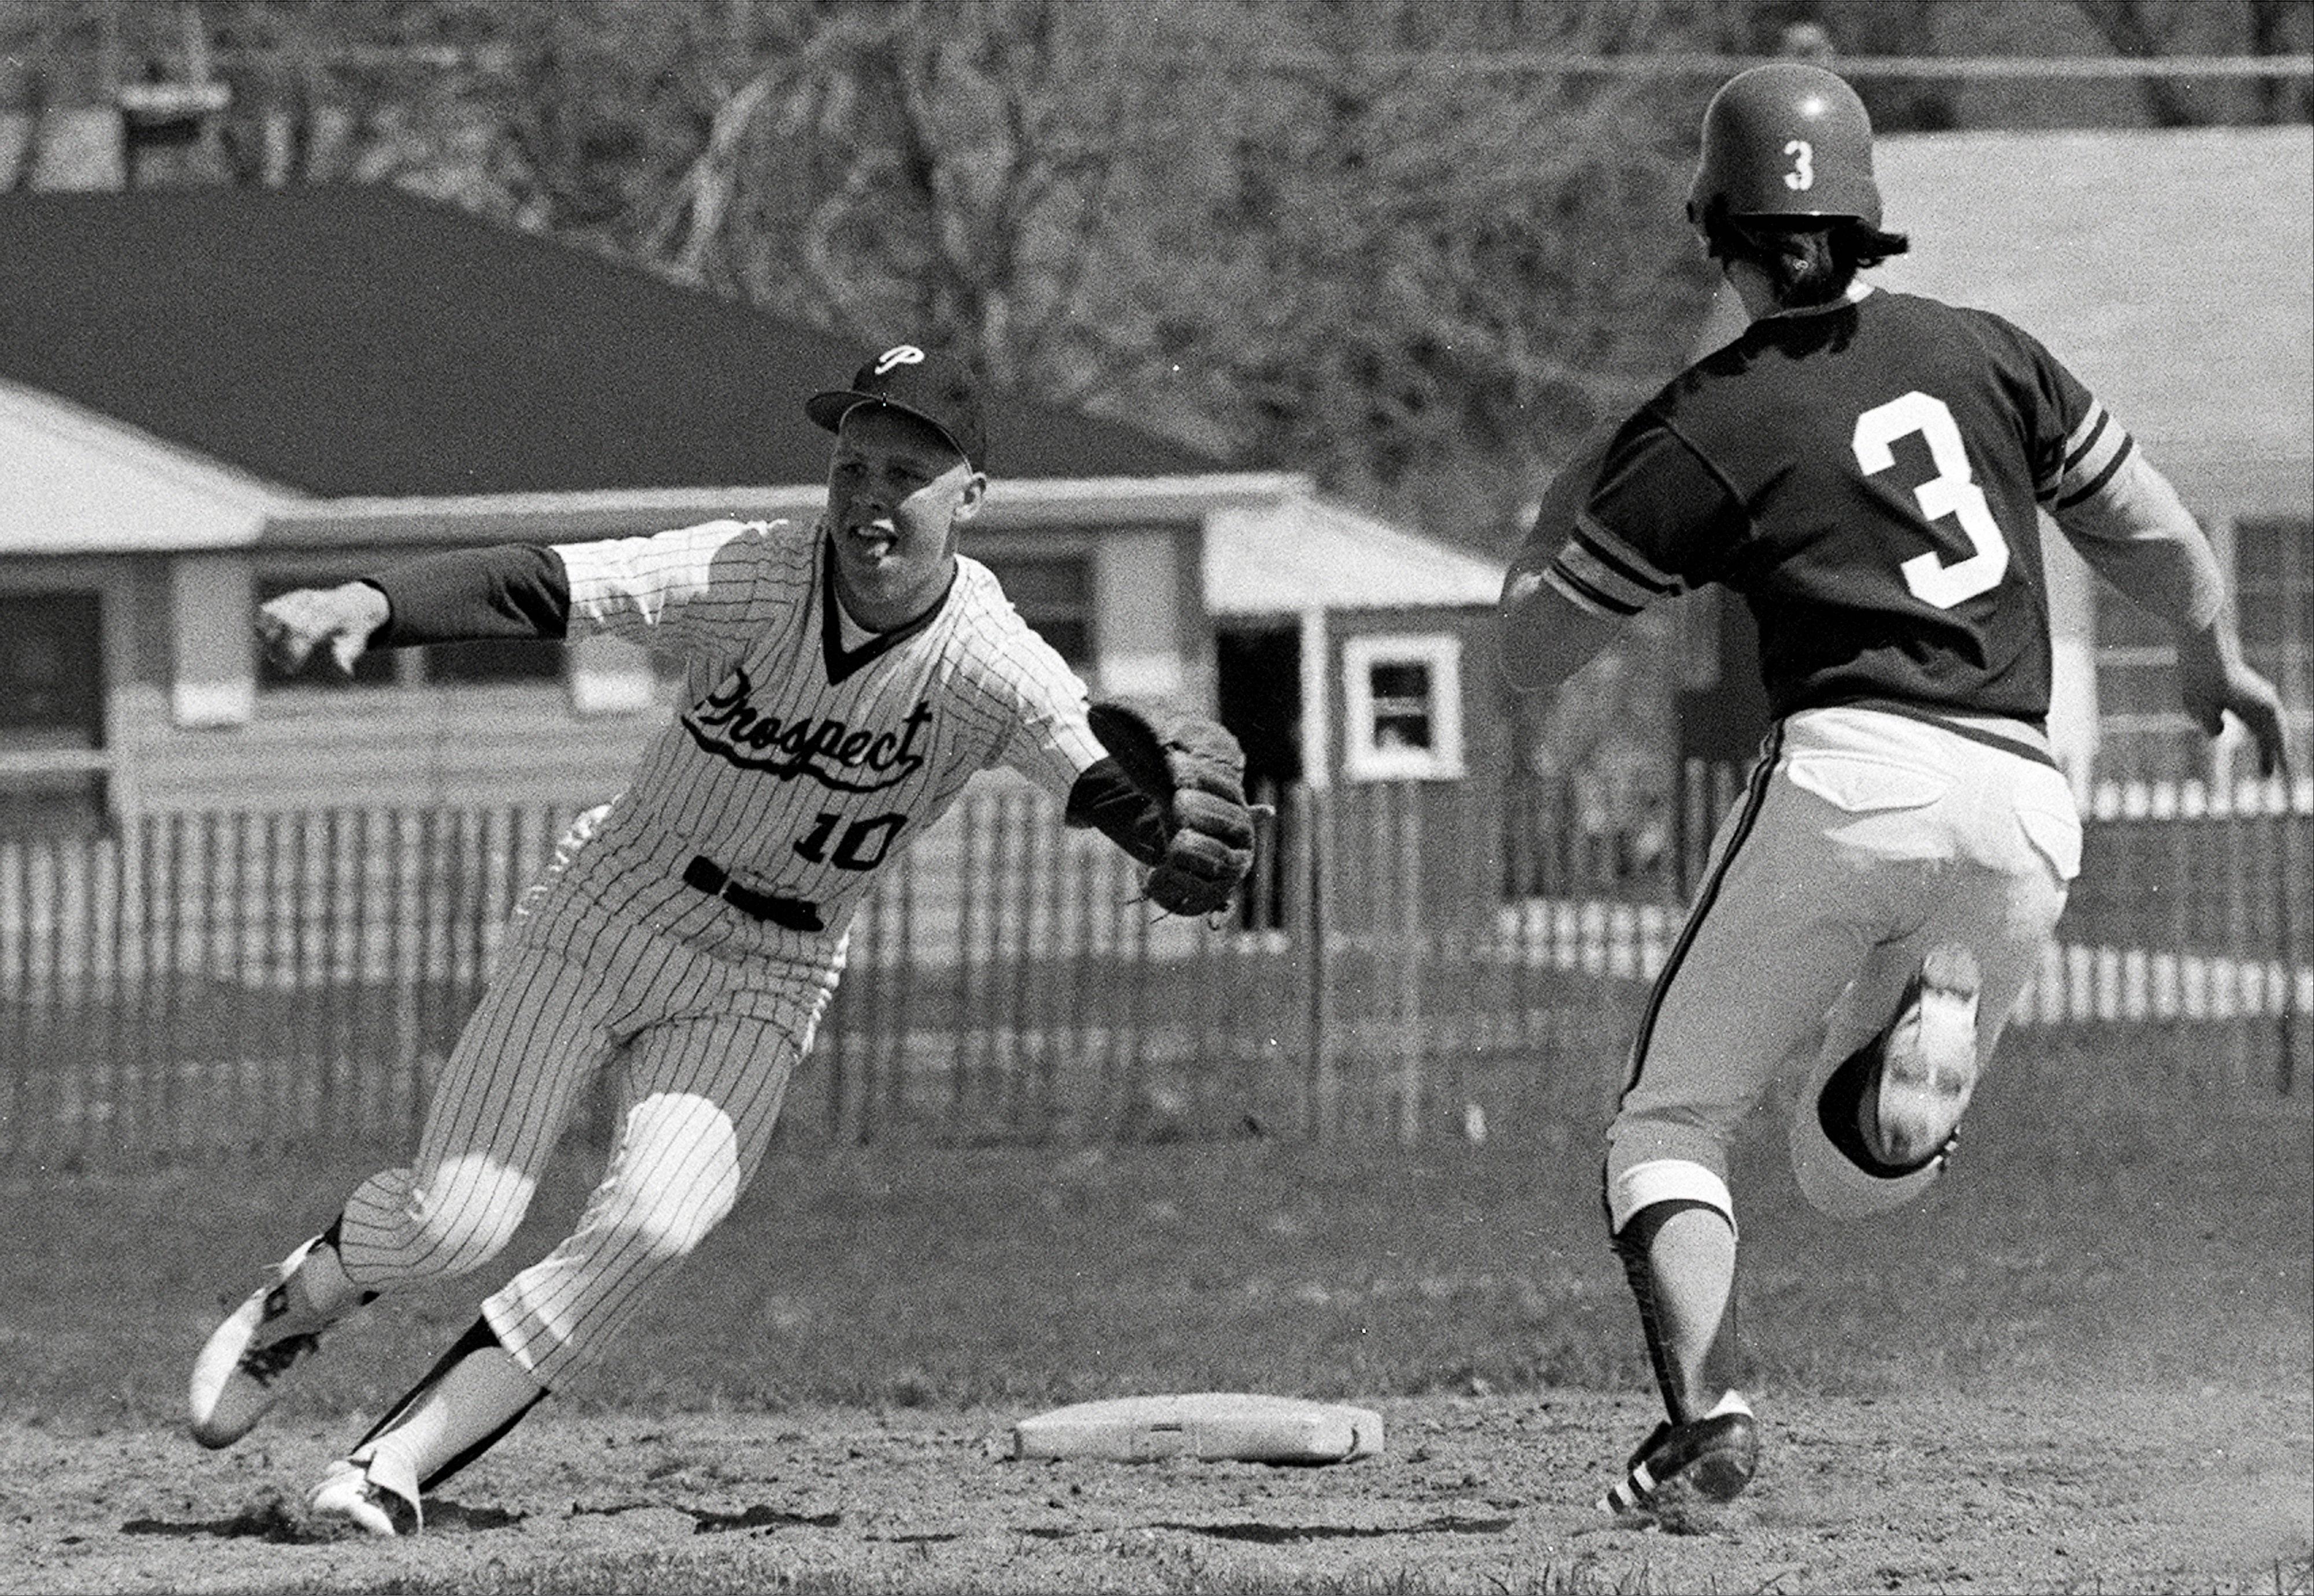 Mike Quade, left, played baseball for Mt. Prospect as shortstop in 1974.